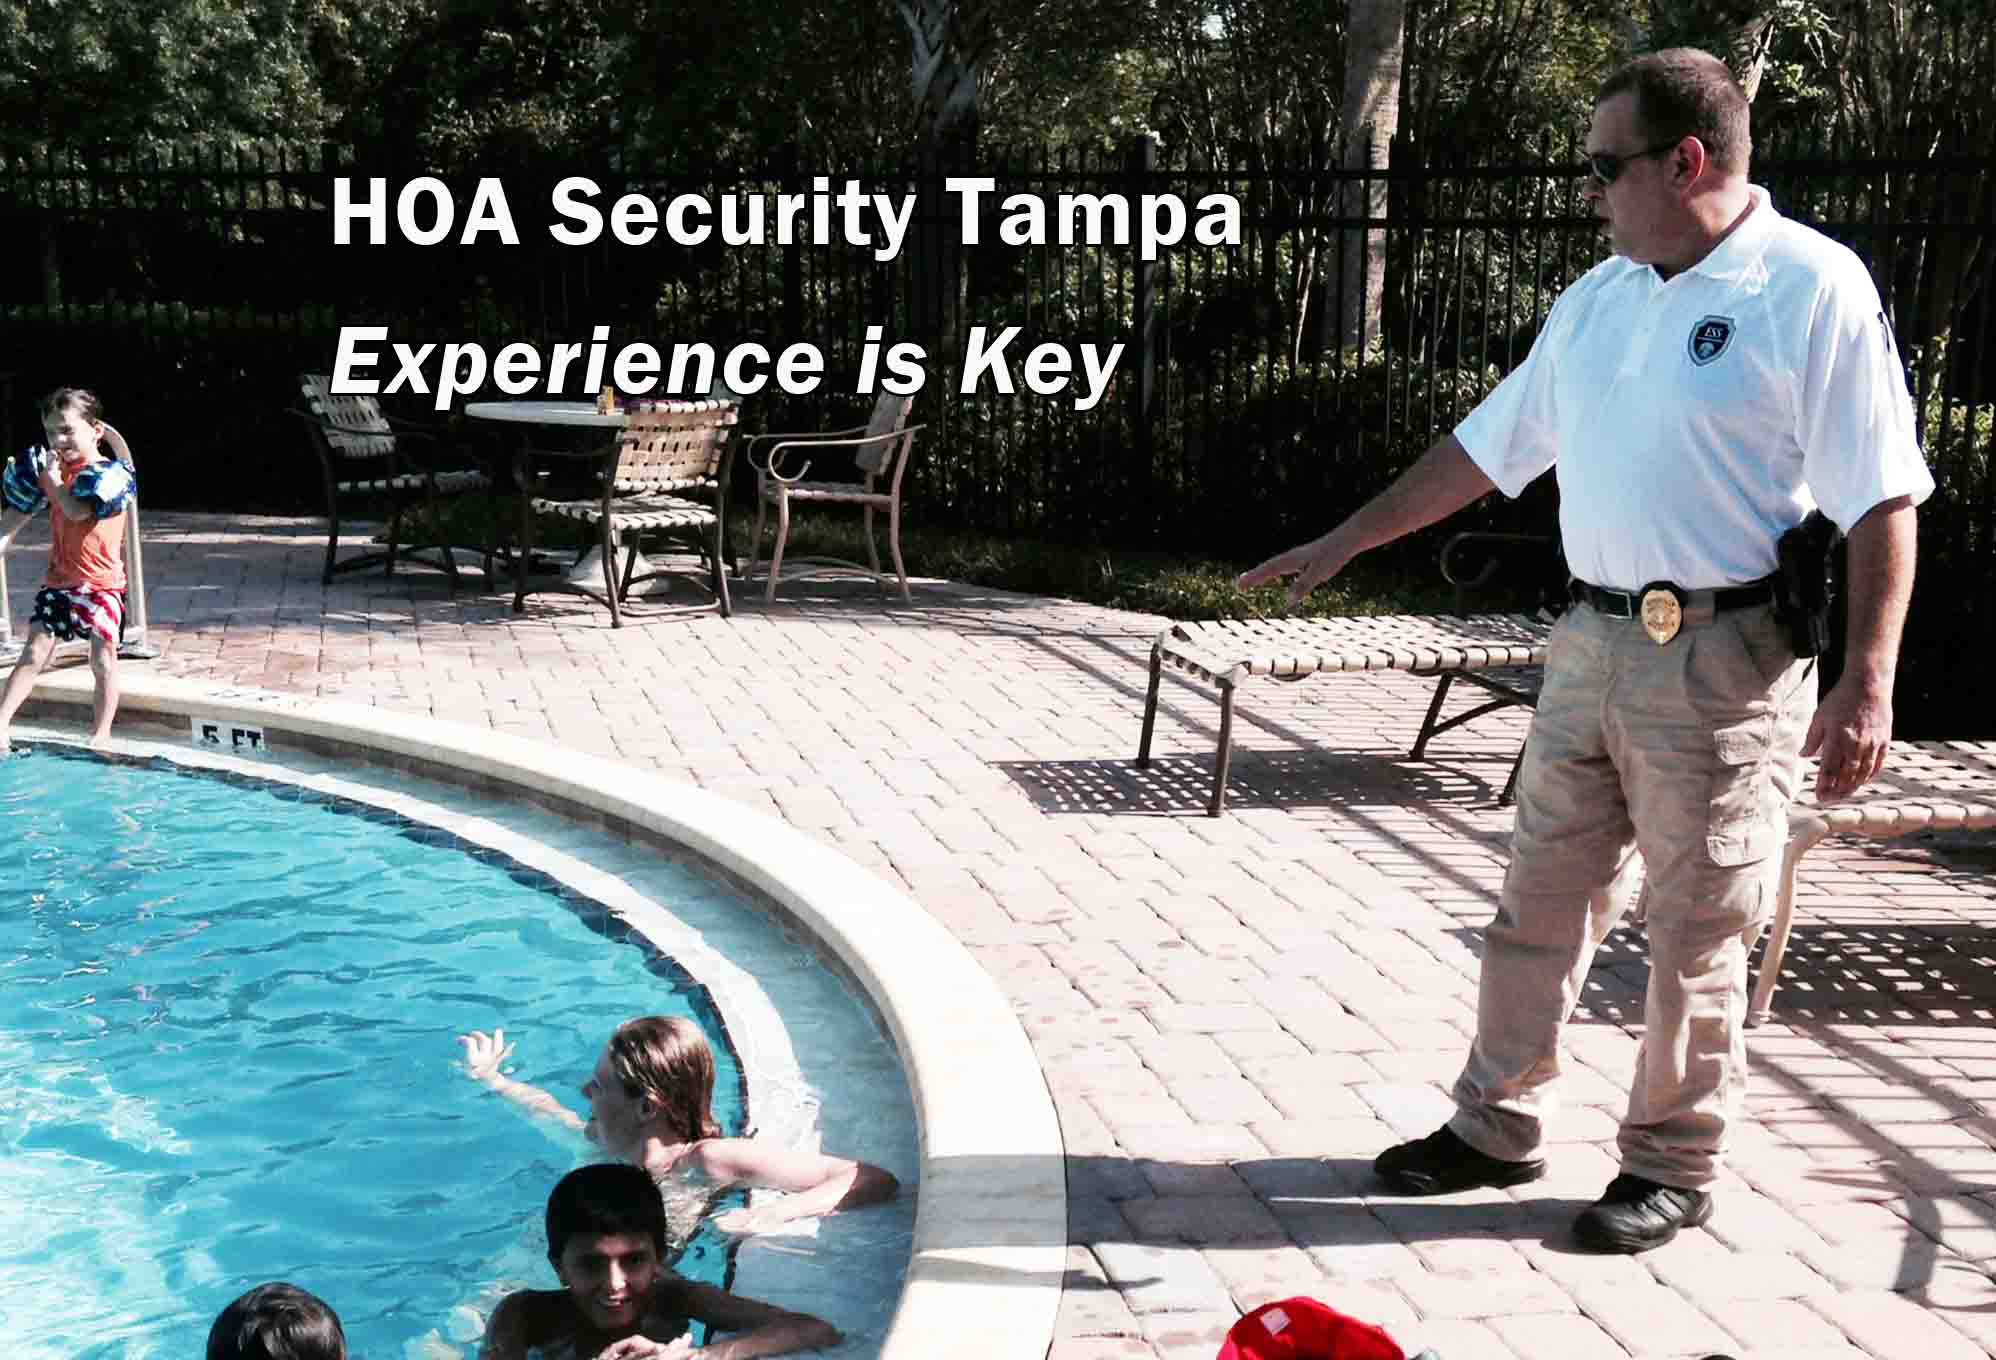 HOA Security Tampa - Experience is Key